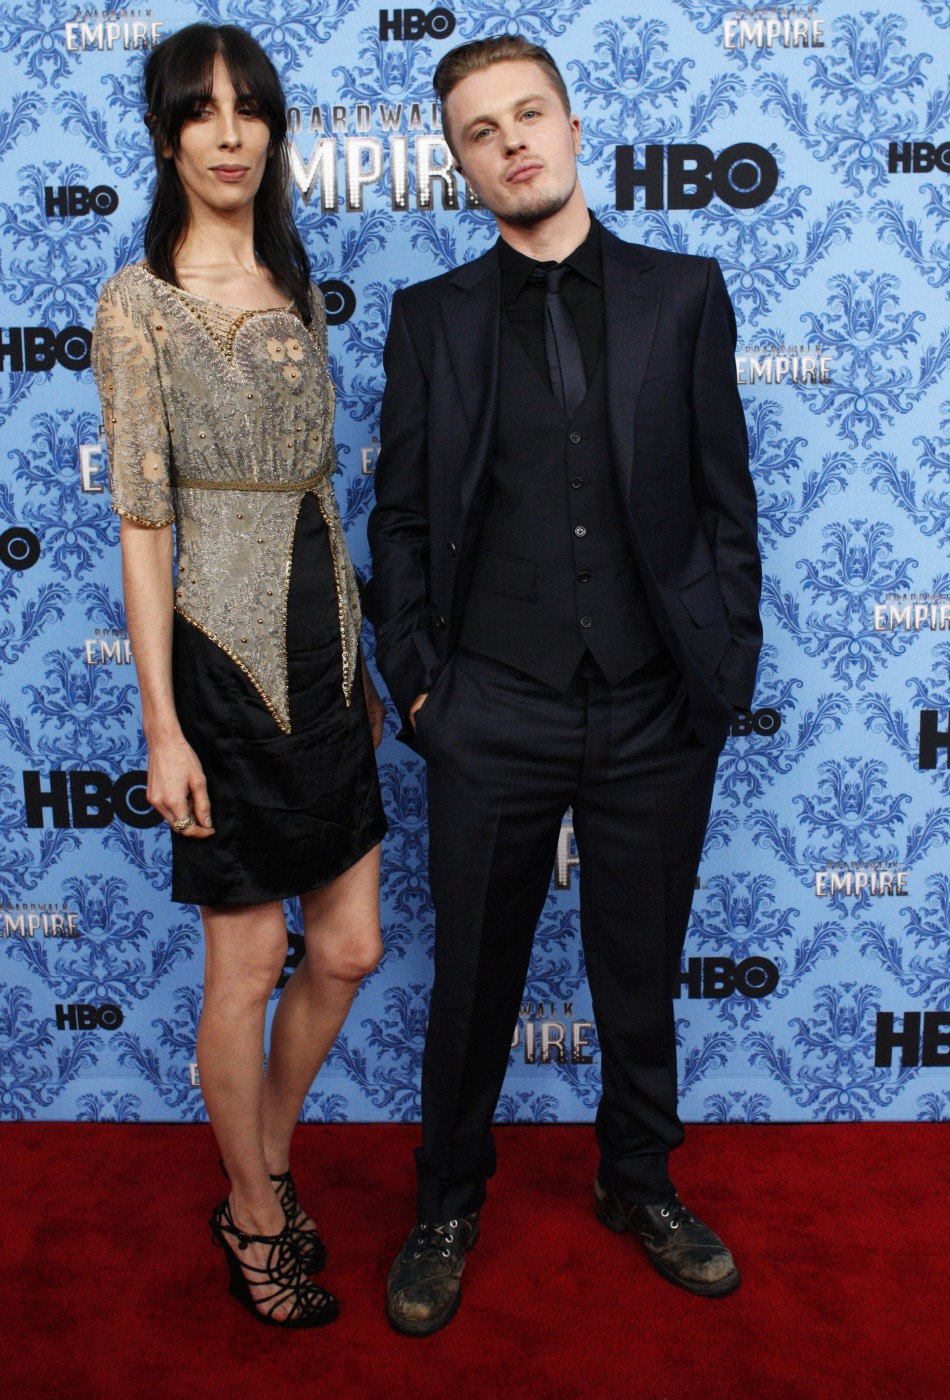 Michael Pitt (R) poses next to his girlfriend, model Jamie Bocher